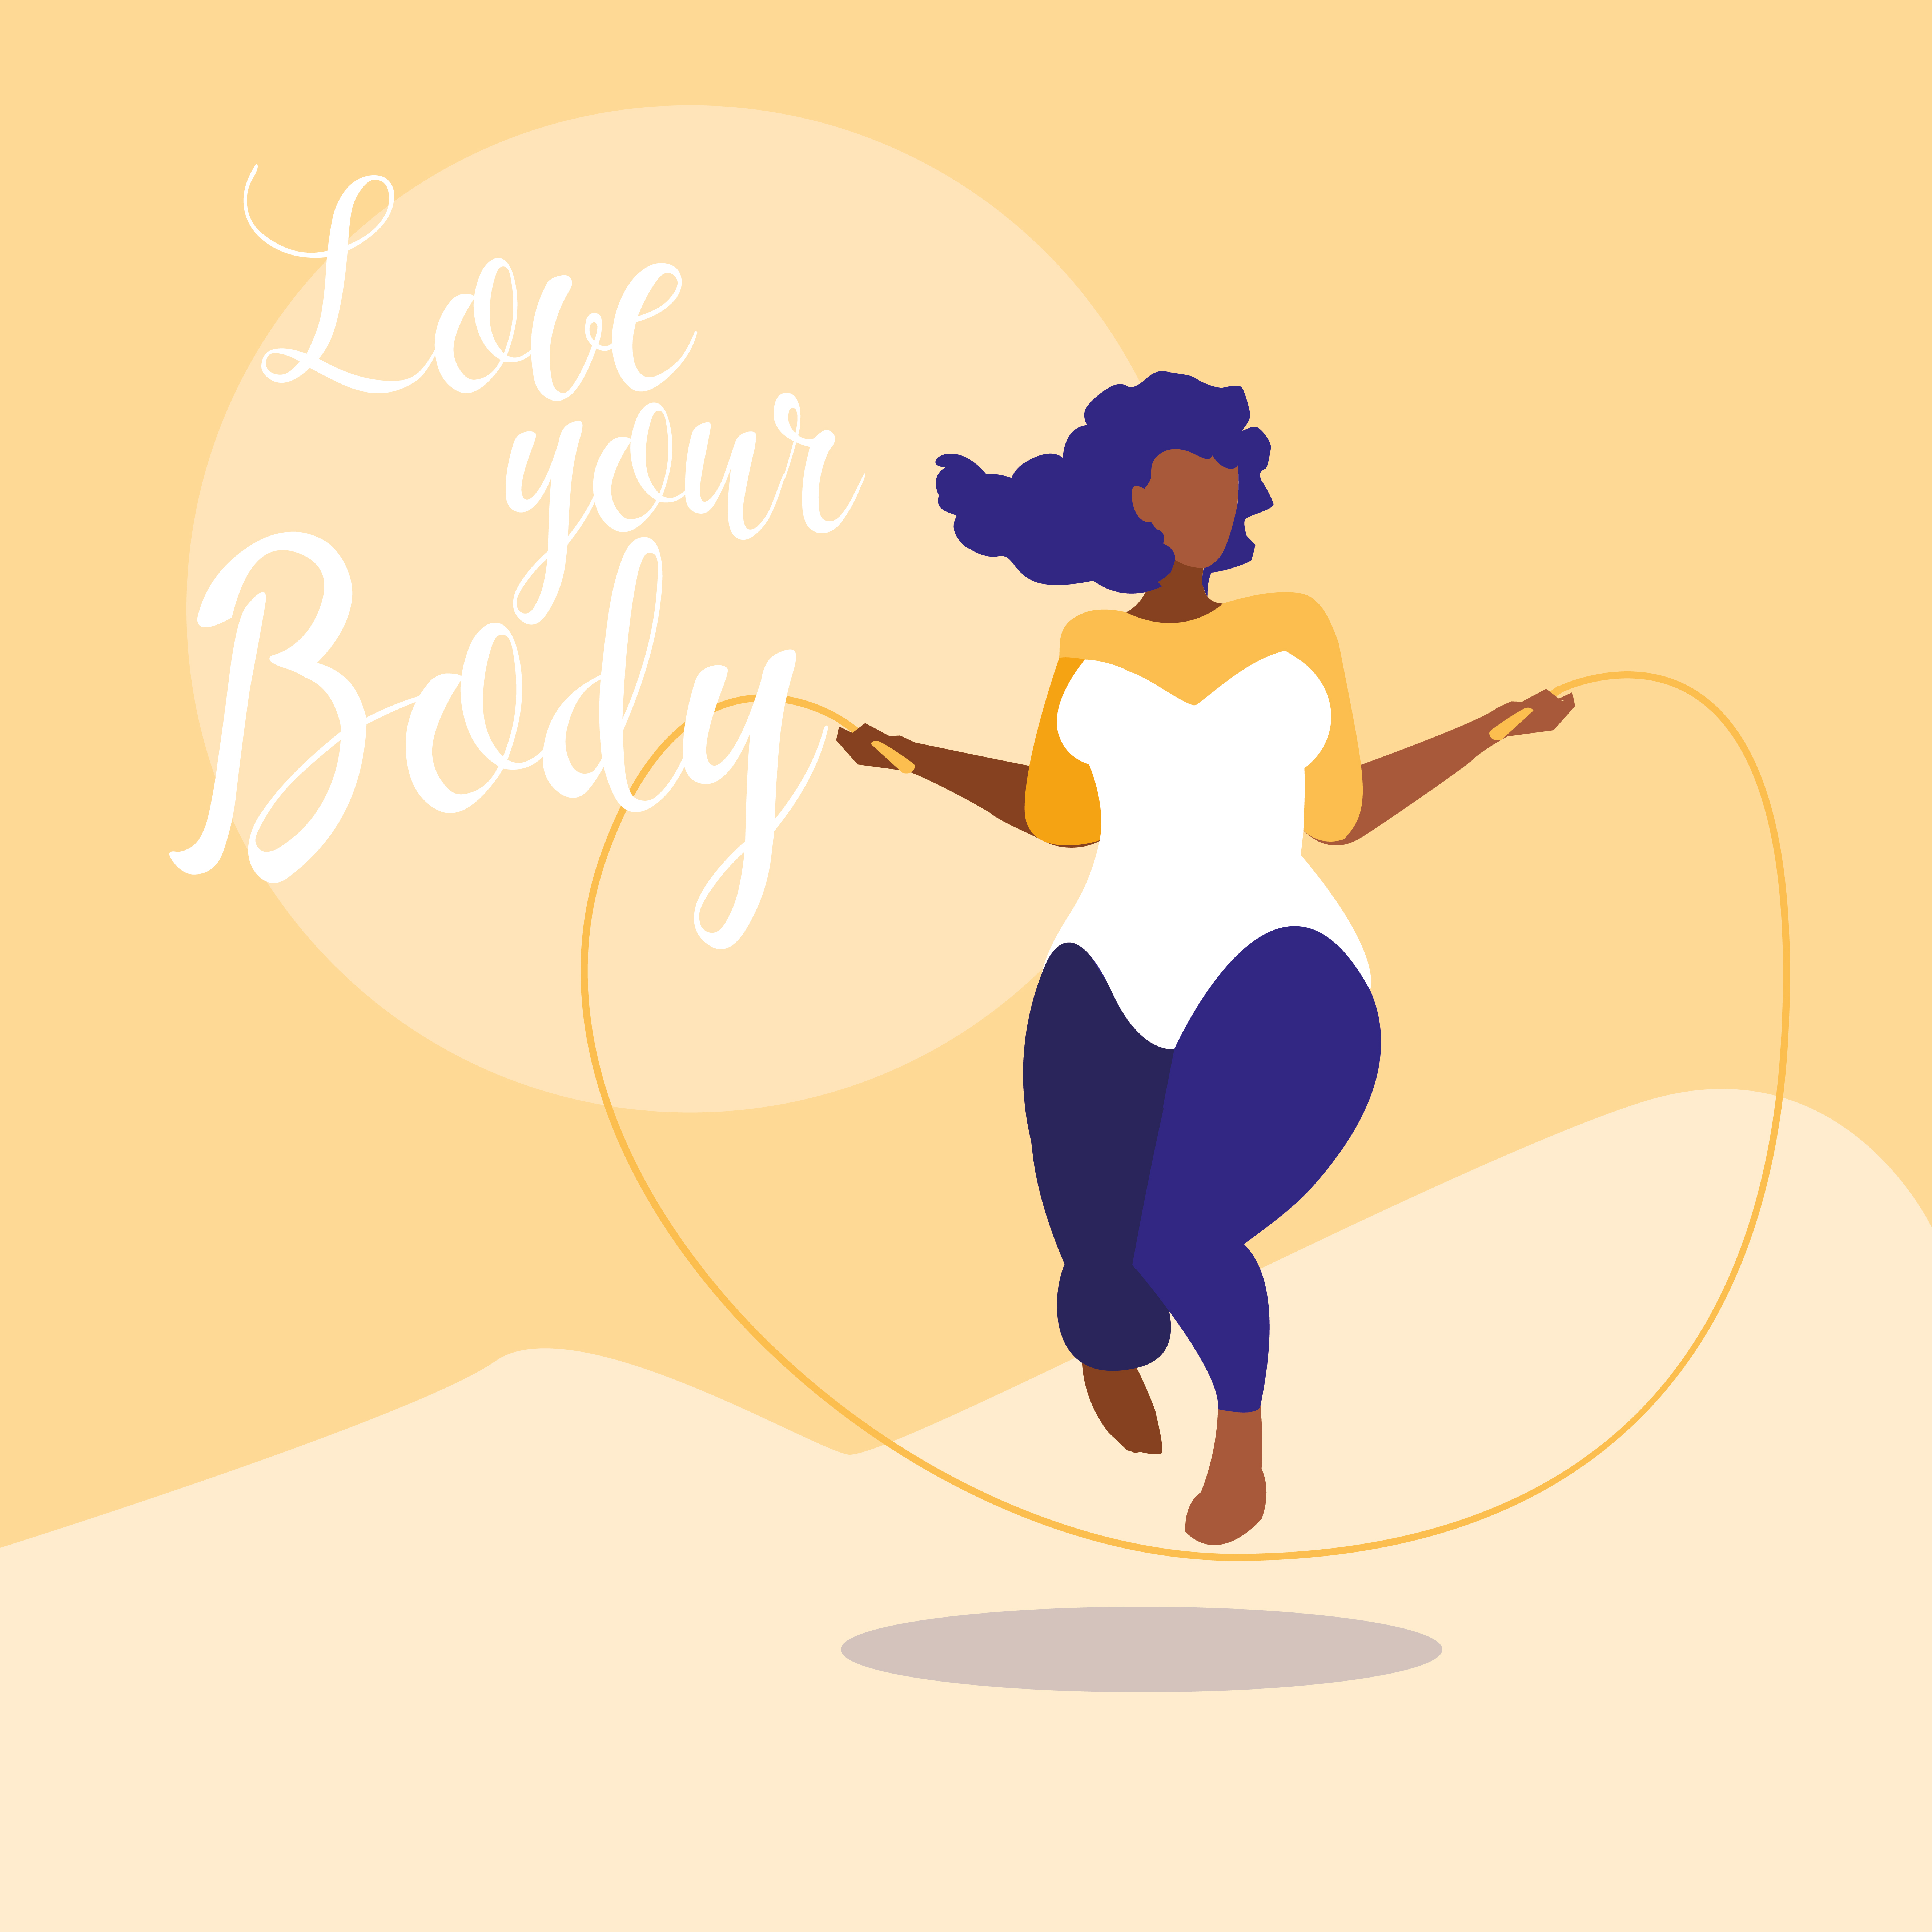 Big Woman Exercising With Love Your Body Text Download Free Vectors Clipart Graphics Vector Art